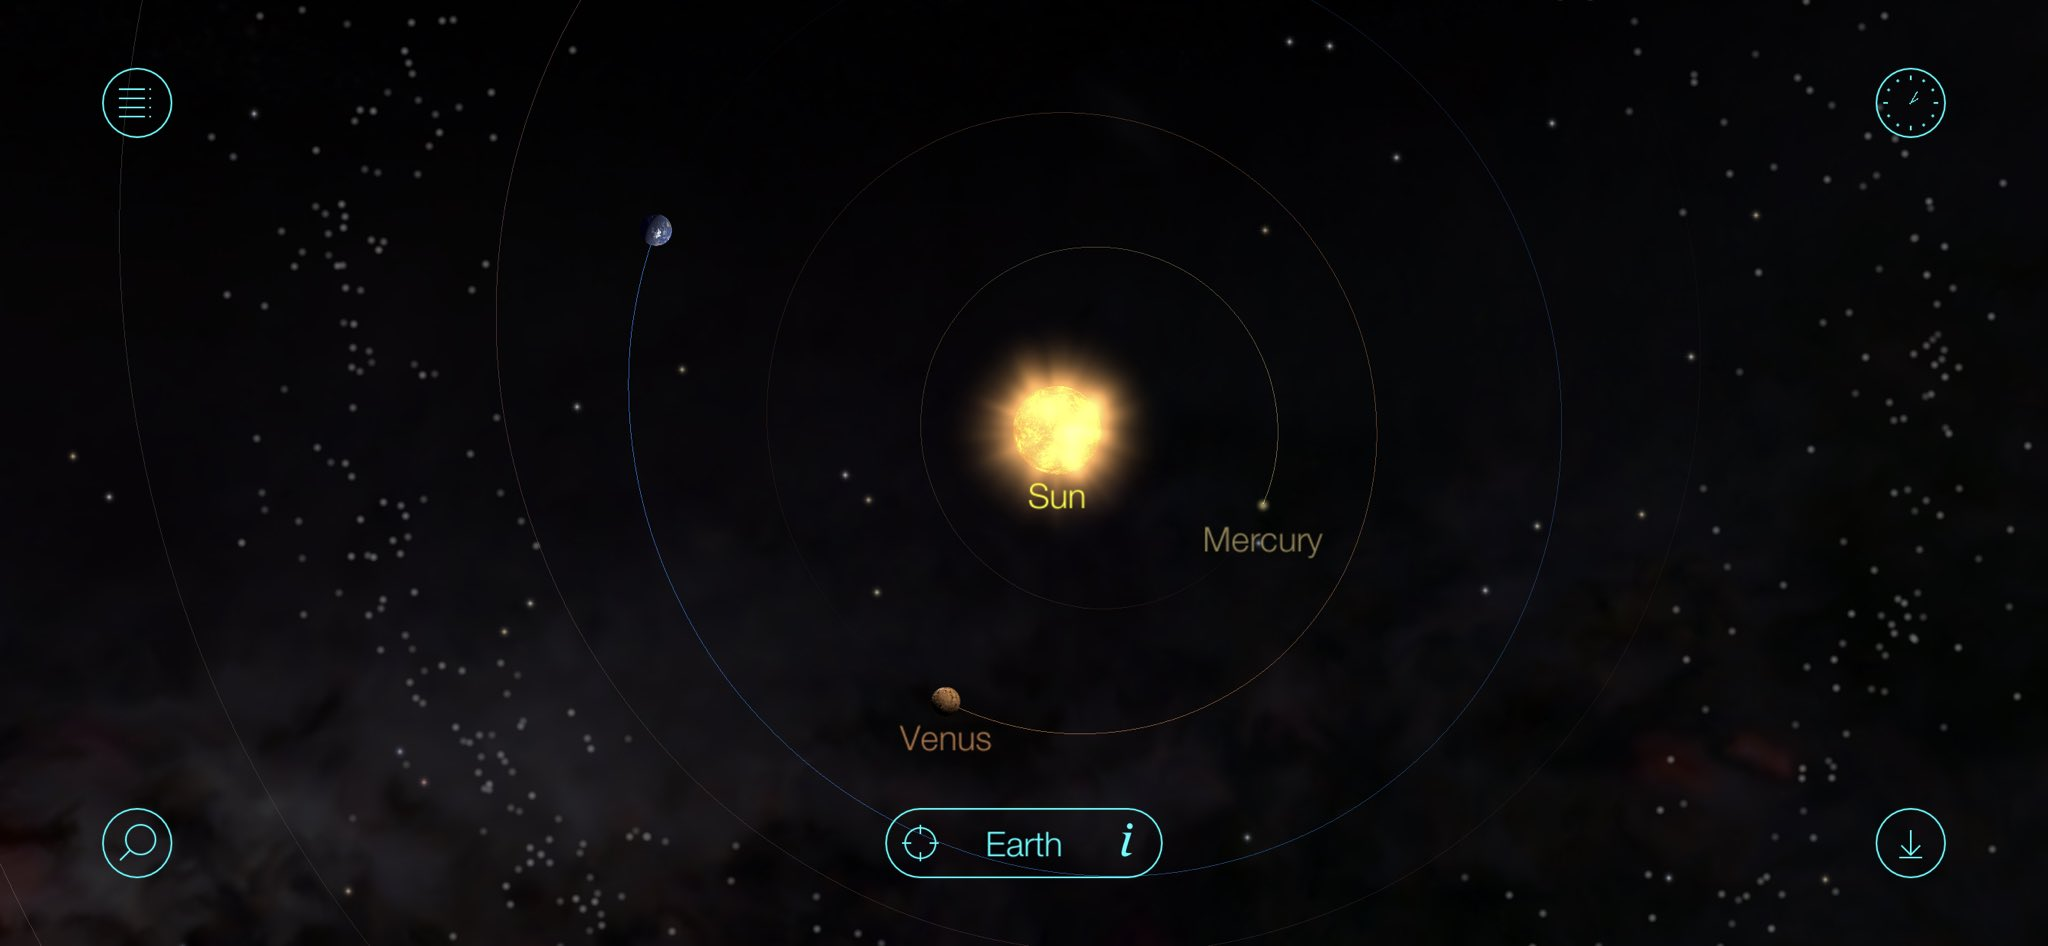 Earth at Perihelion 🌎✨Our planet will reach perihelion on Januaru 5 ay 07:47 UTC. At that time Earth will be closer to the Sun than at any other time of the year, and the Sun will appear larger in the sky. https://t.co/CEMHRTJwrc